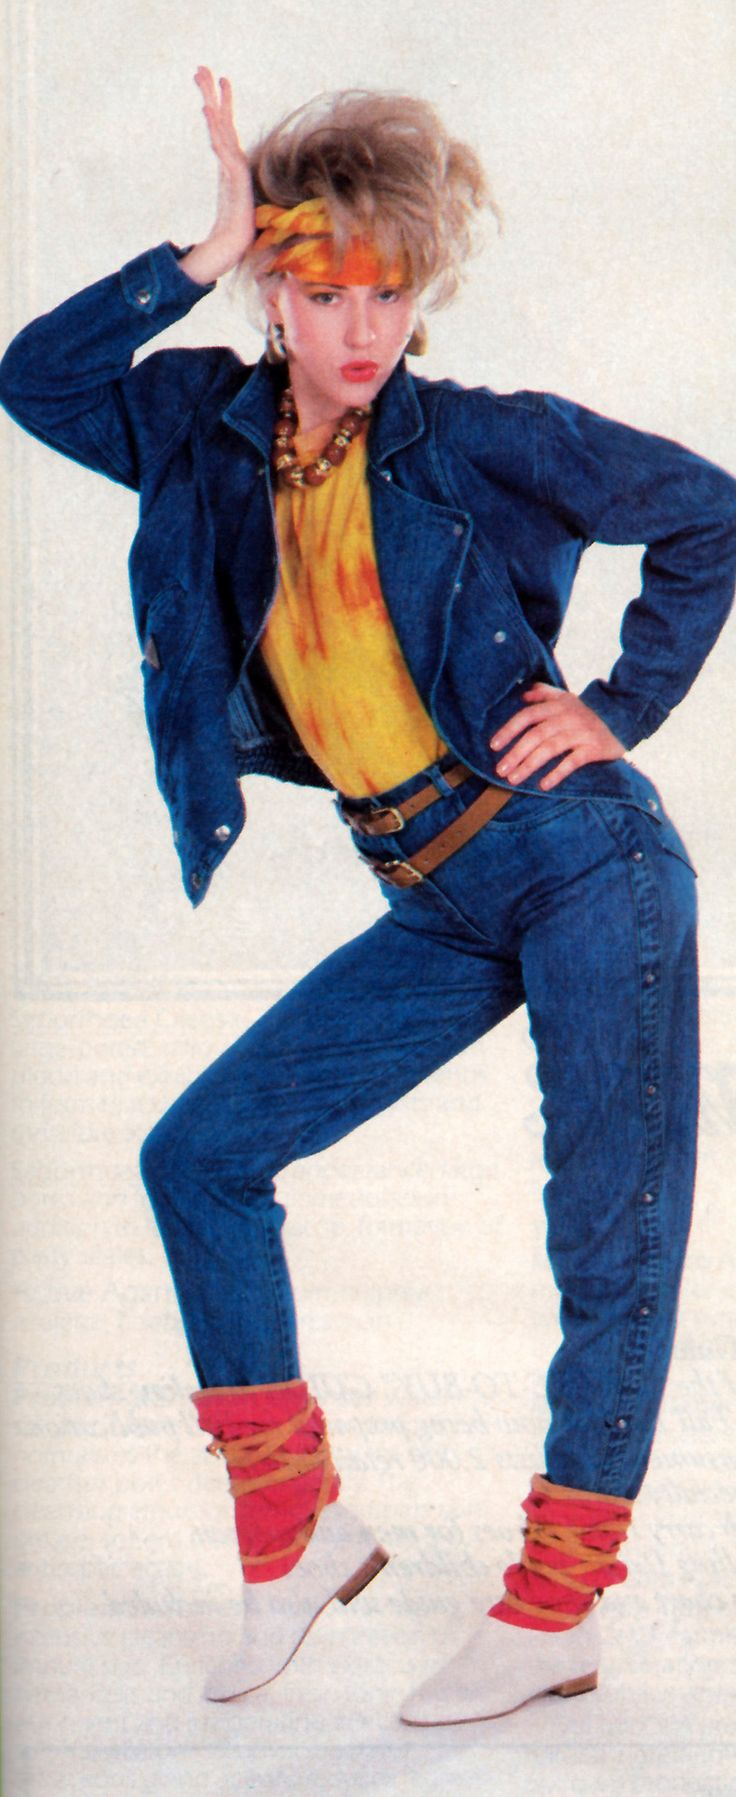 62 best images about 80s Fashion - Denim on Pinterest ...